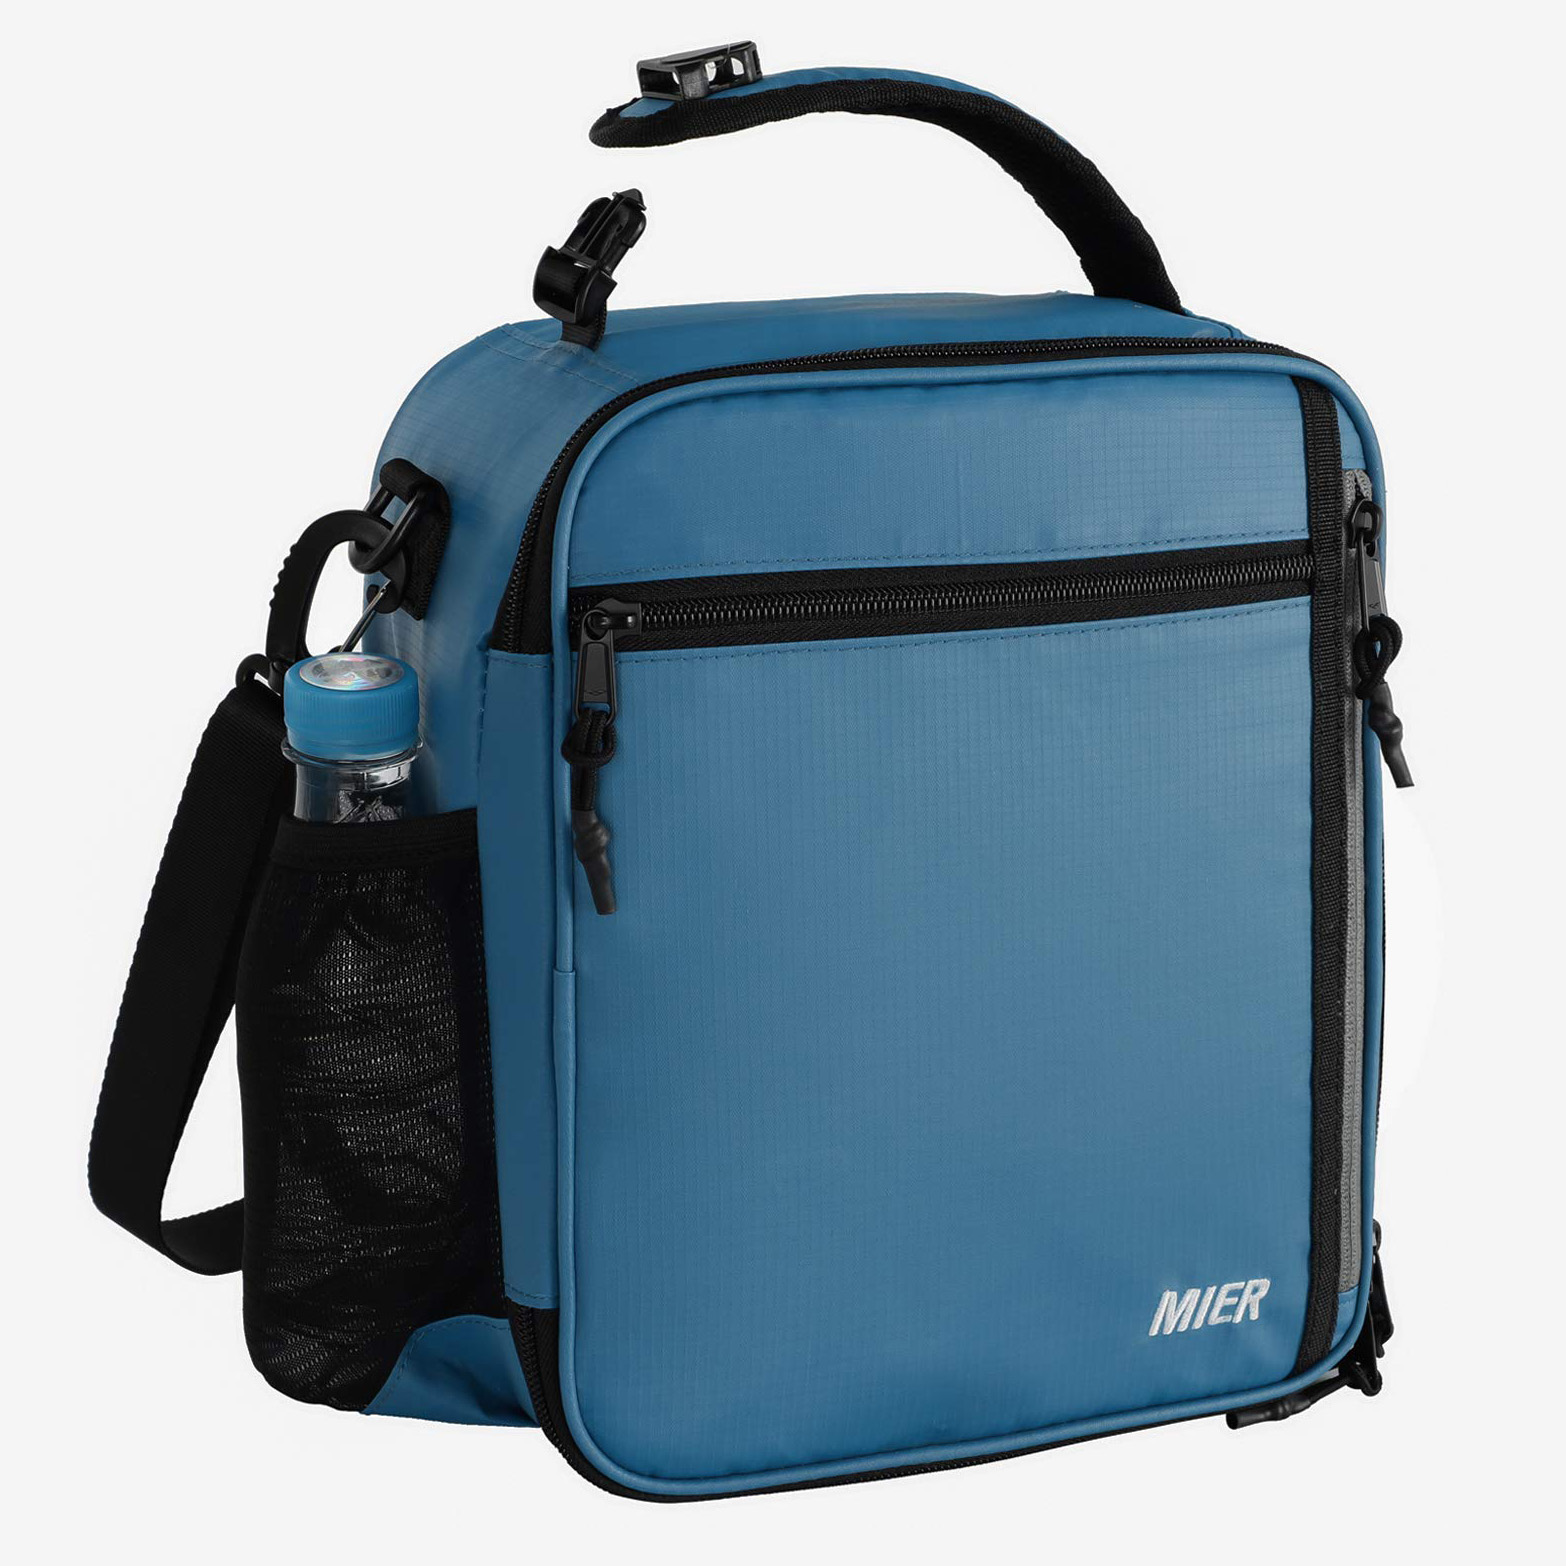 MIER Insulated Lunch Box Bag with Shoulder Strap